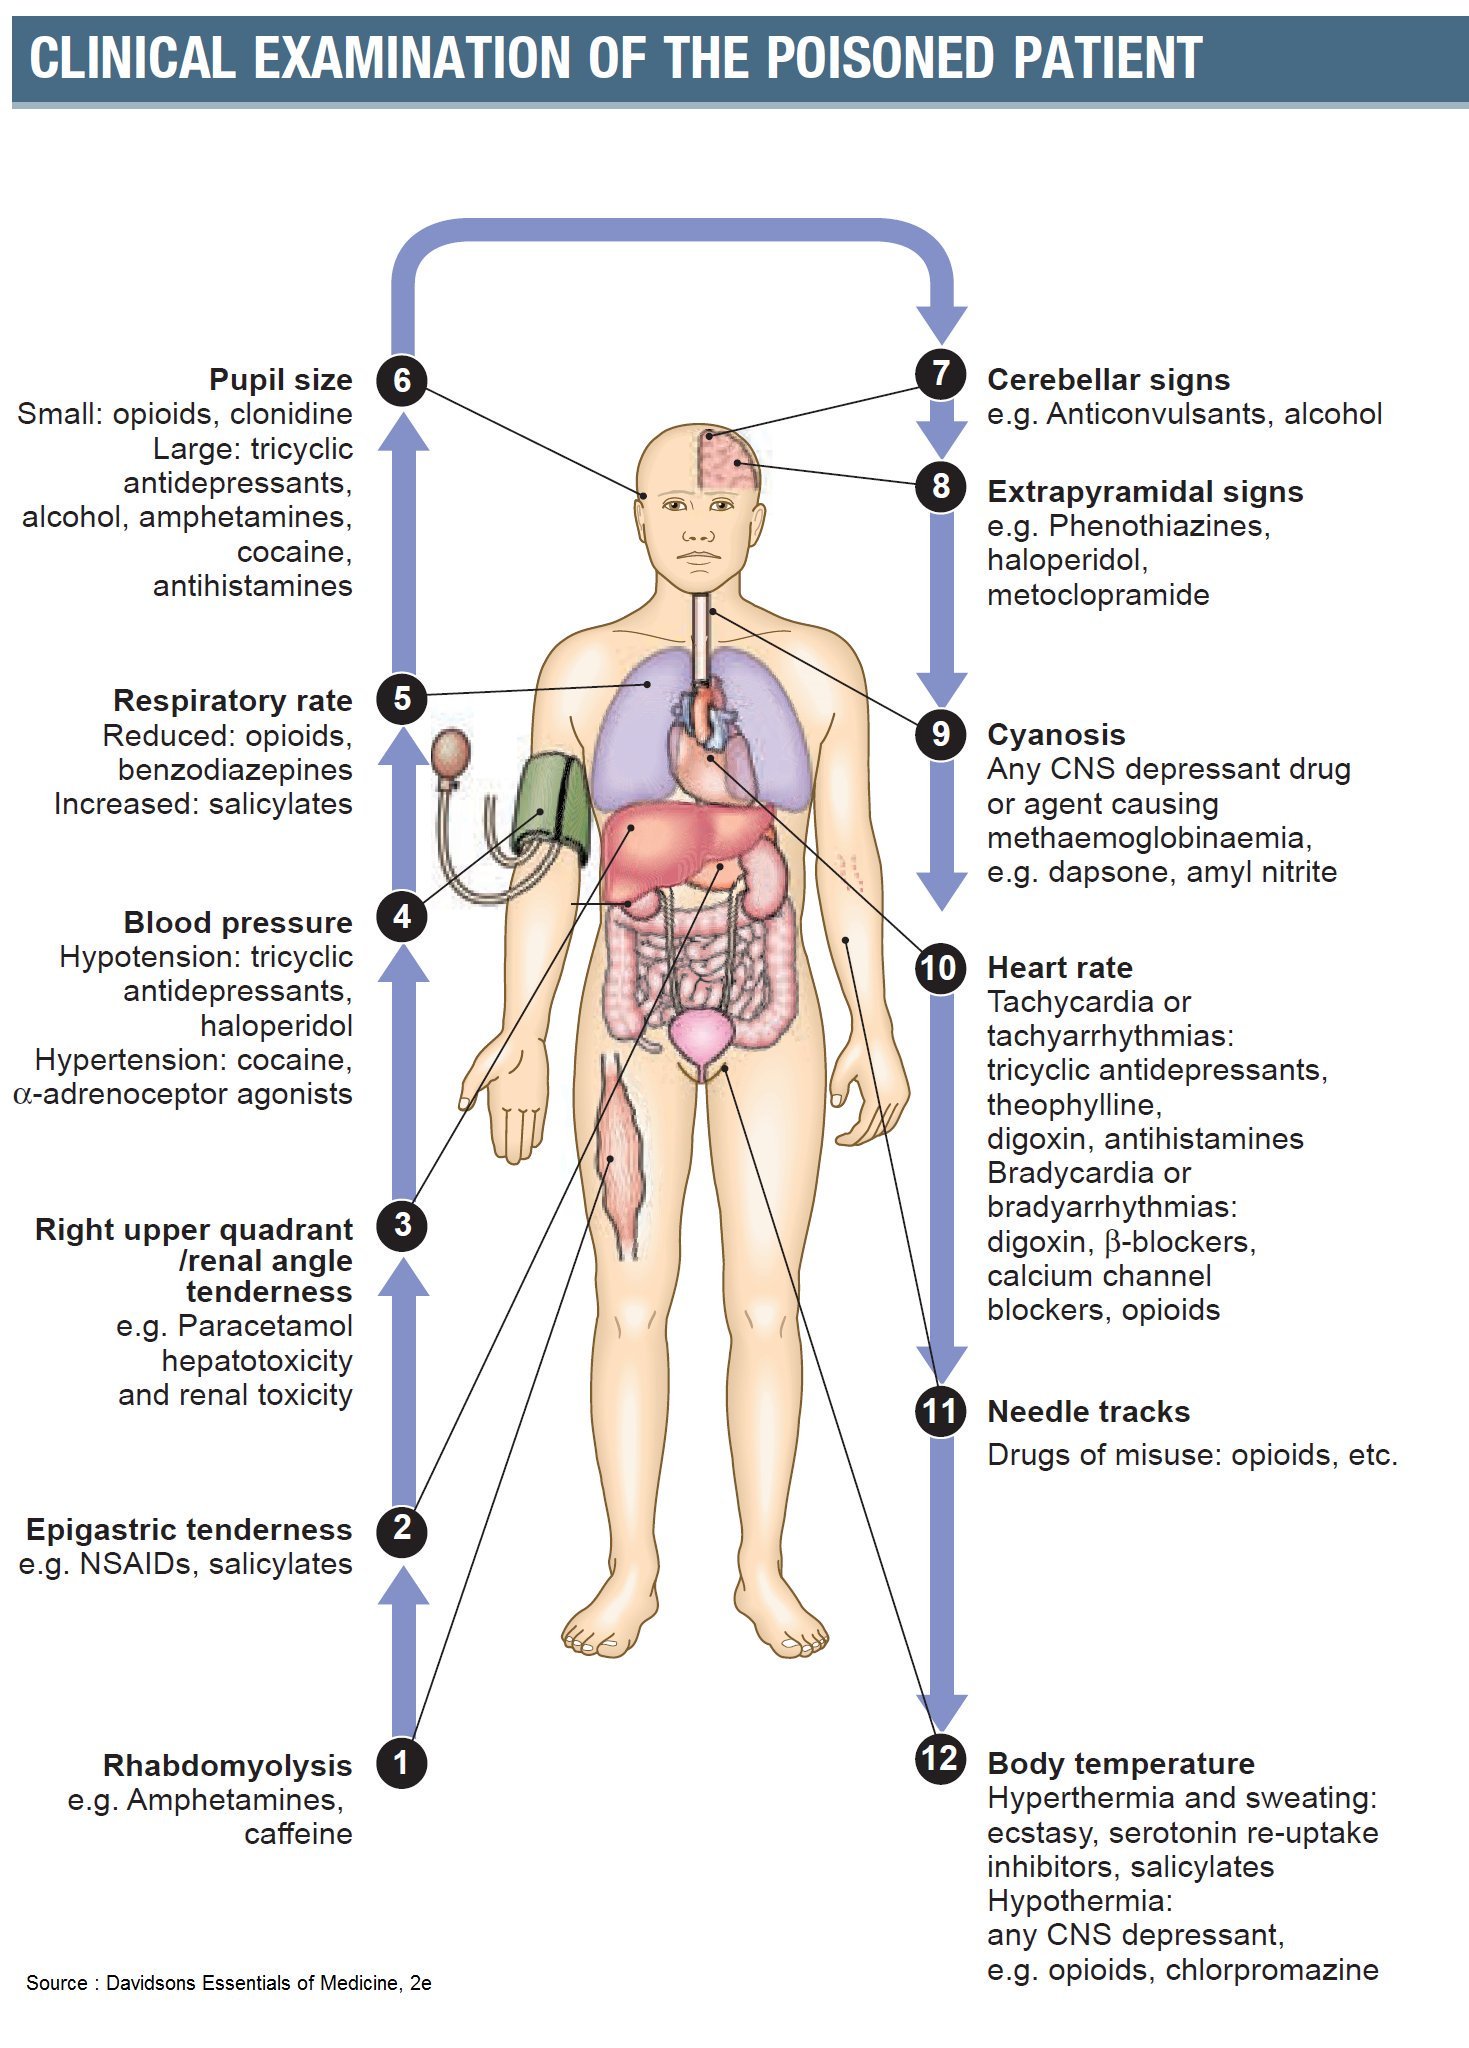 Clinical Examination of the Poisoned Patient